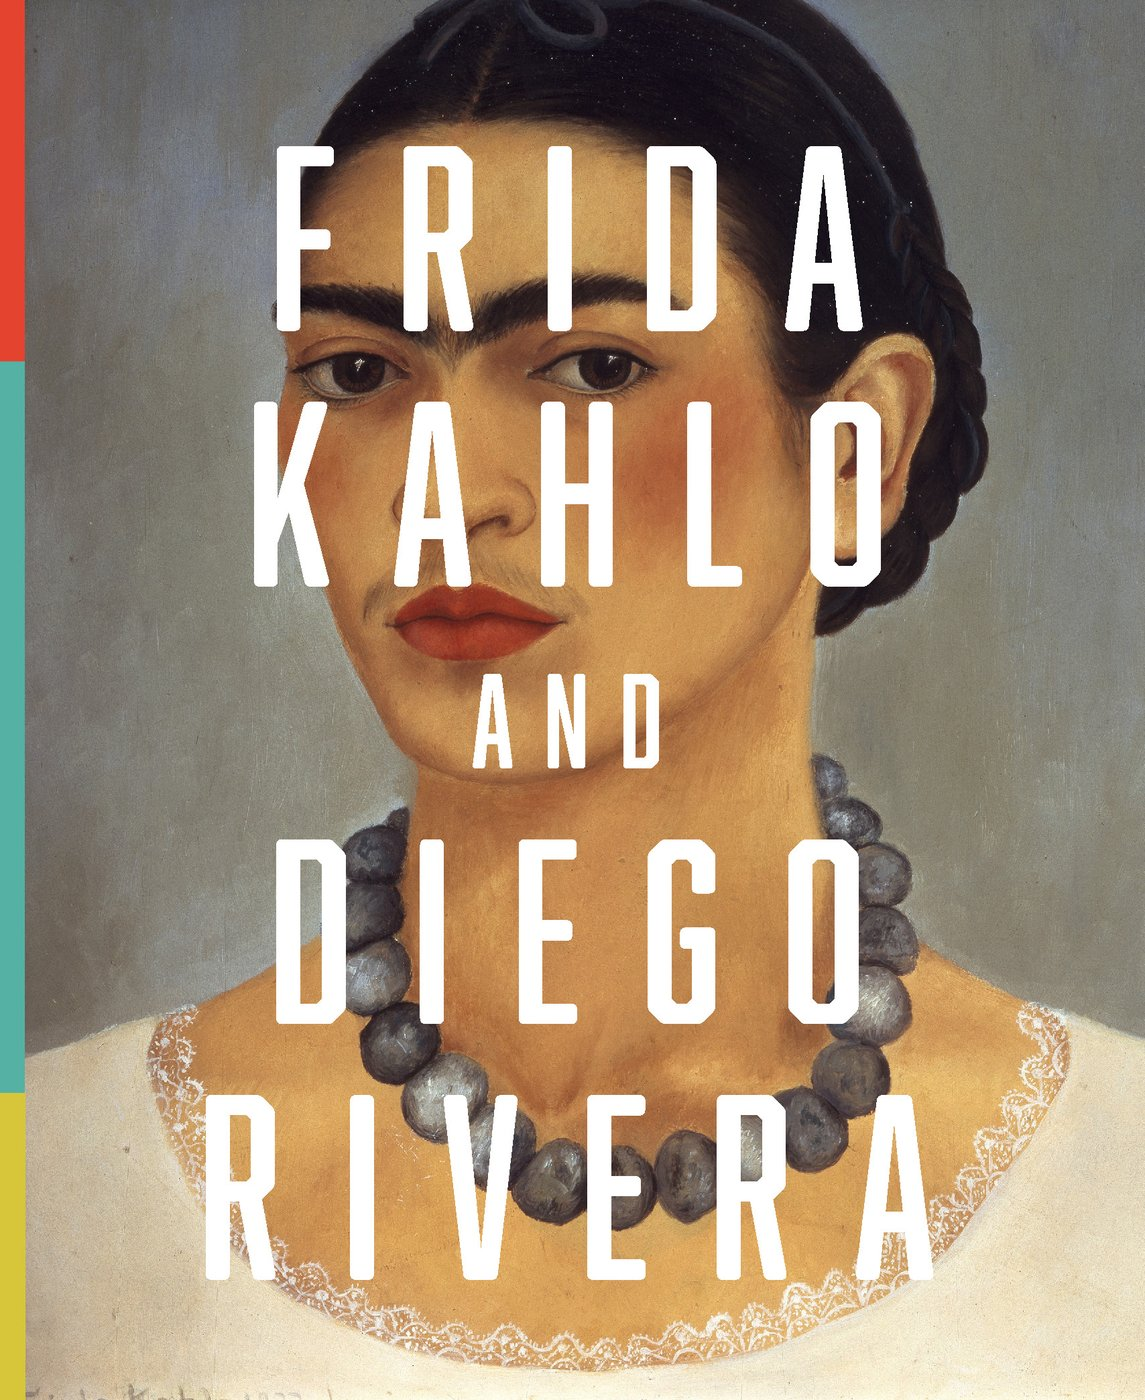 frida kahlo and diego rivera art gallery nsw